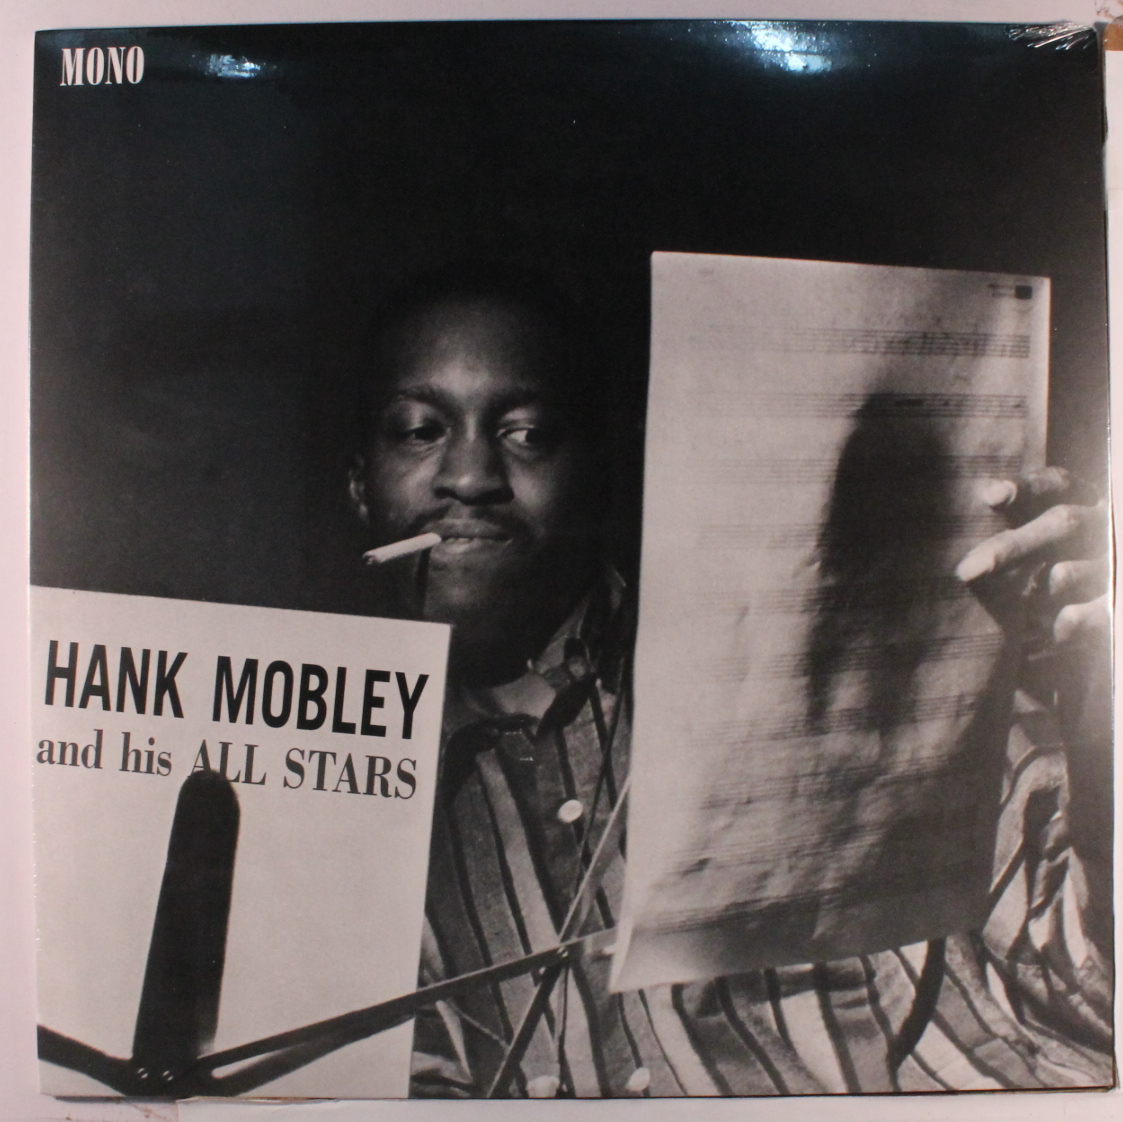 Hank Mobley | Hank Mobley and his all stars 180 gr. (2012)